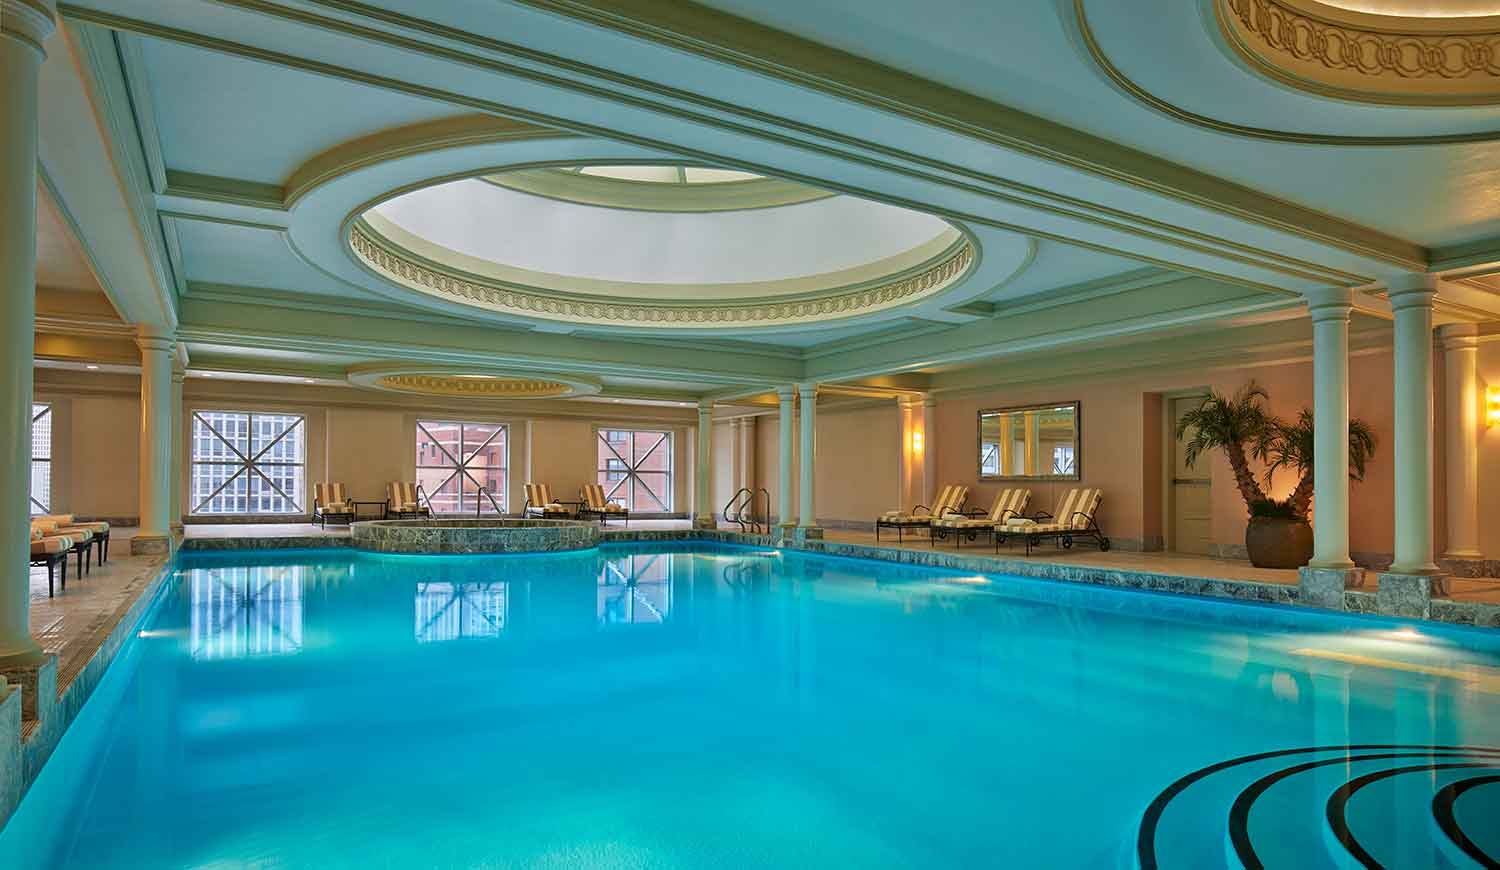 Swimming pool at Four Seasons Chicago.